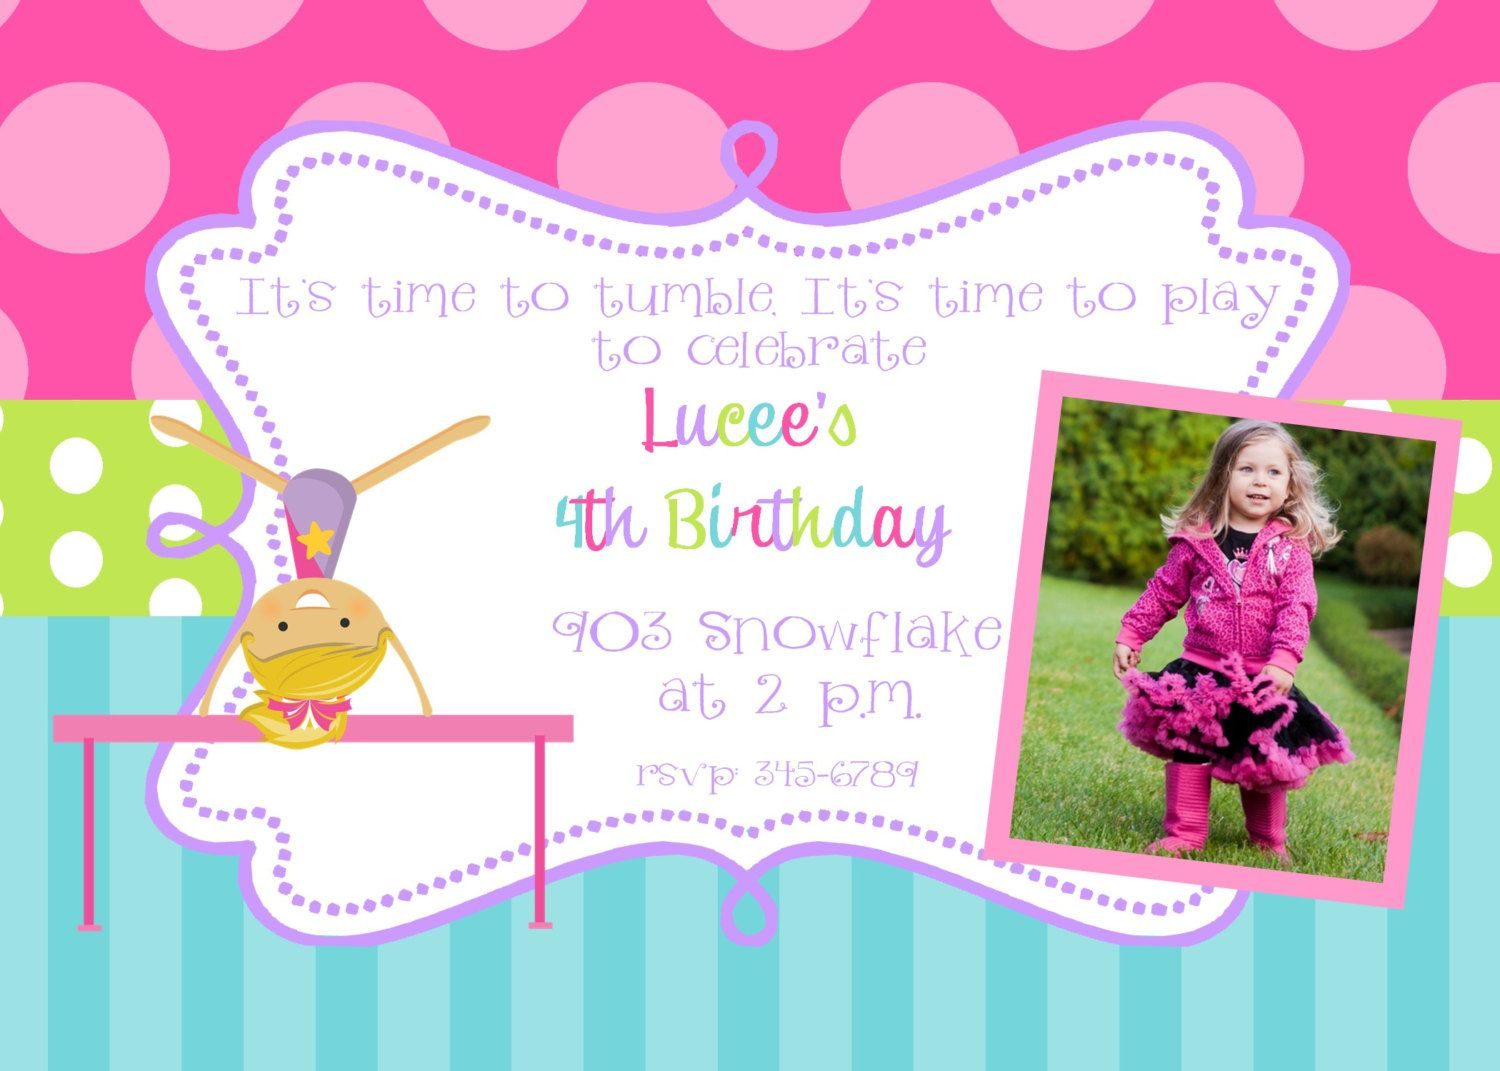 12 gymnastics birthday party invitations with by noteablechic, Party invitations